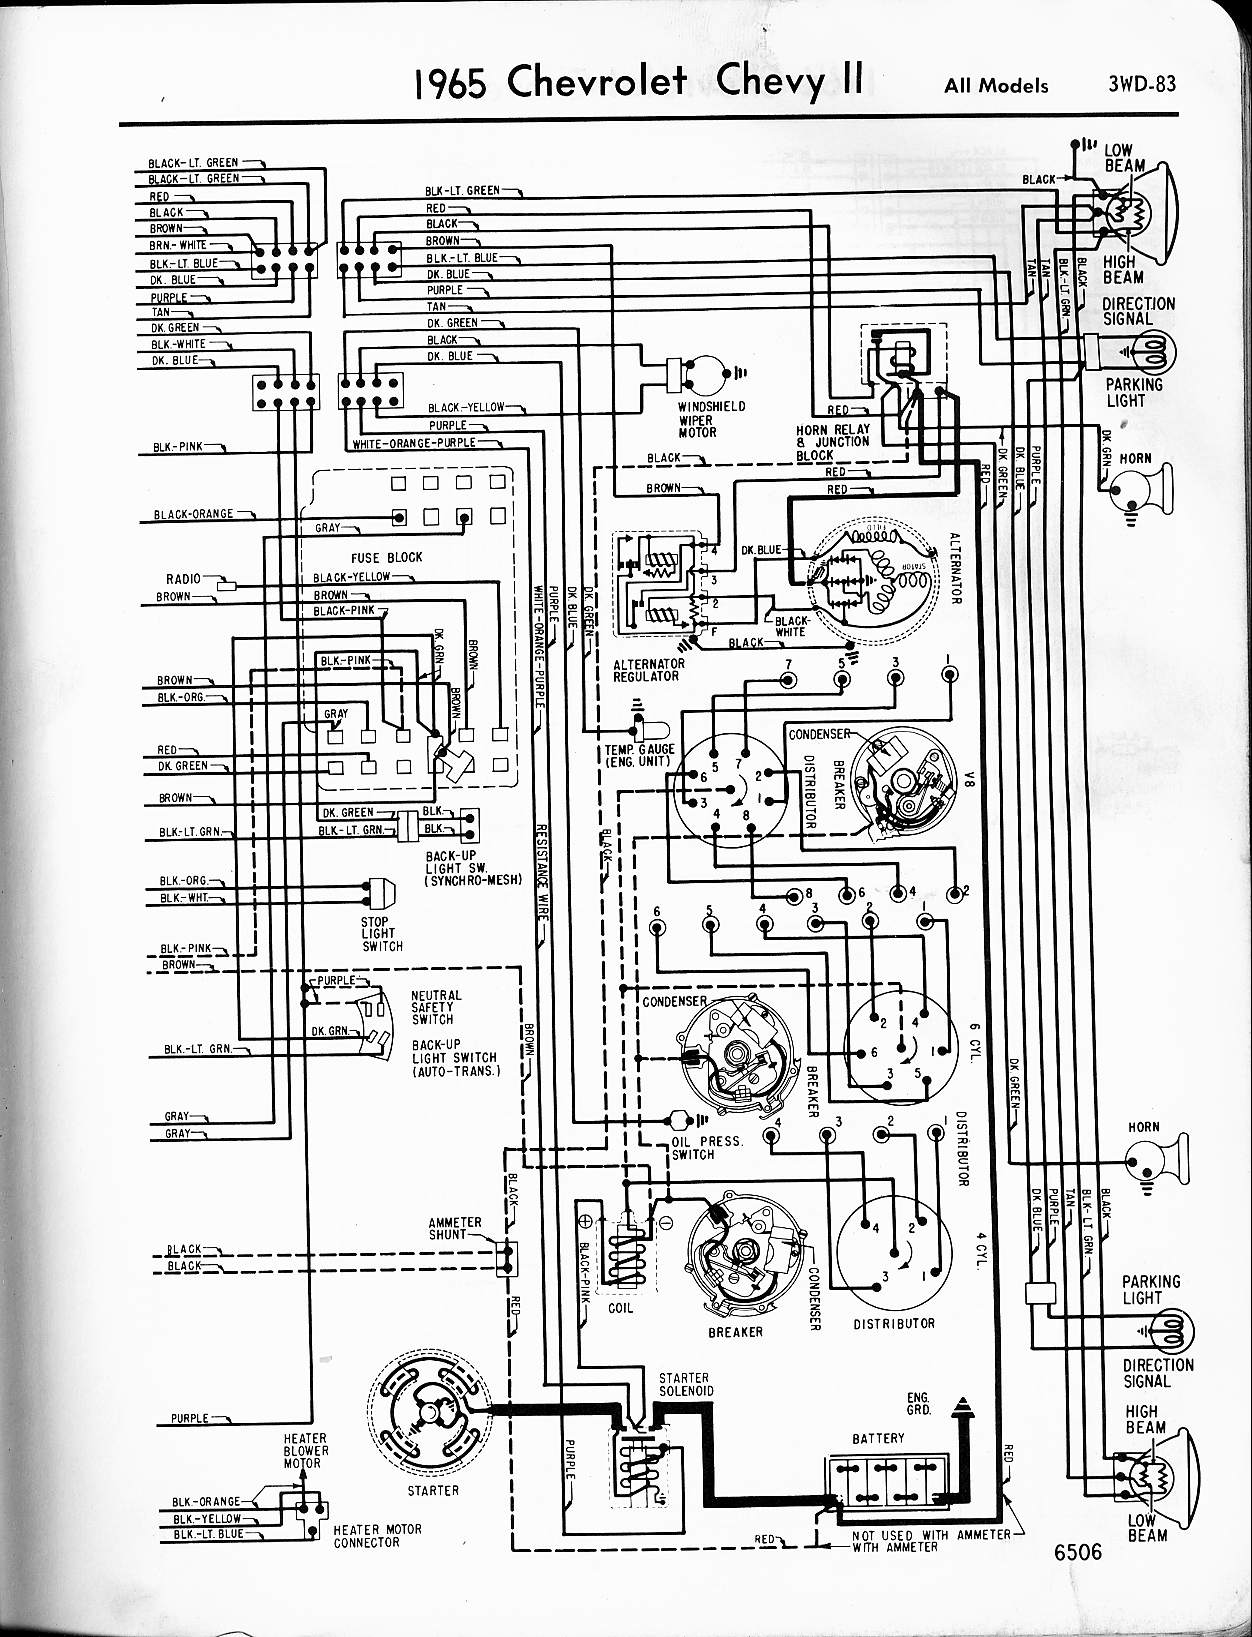 MWireChev65_3WD 083 chevy diagrams 1971 chevy nova wiring harness at gsmportal.co